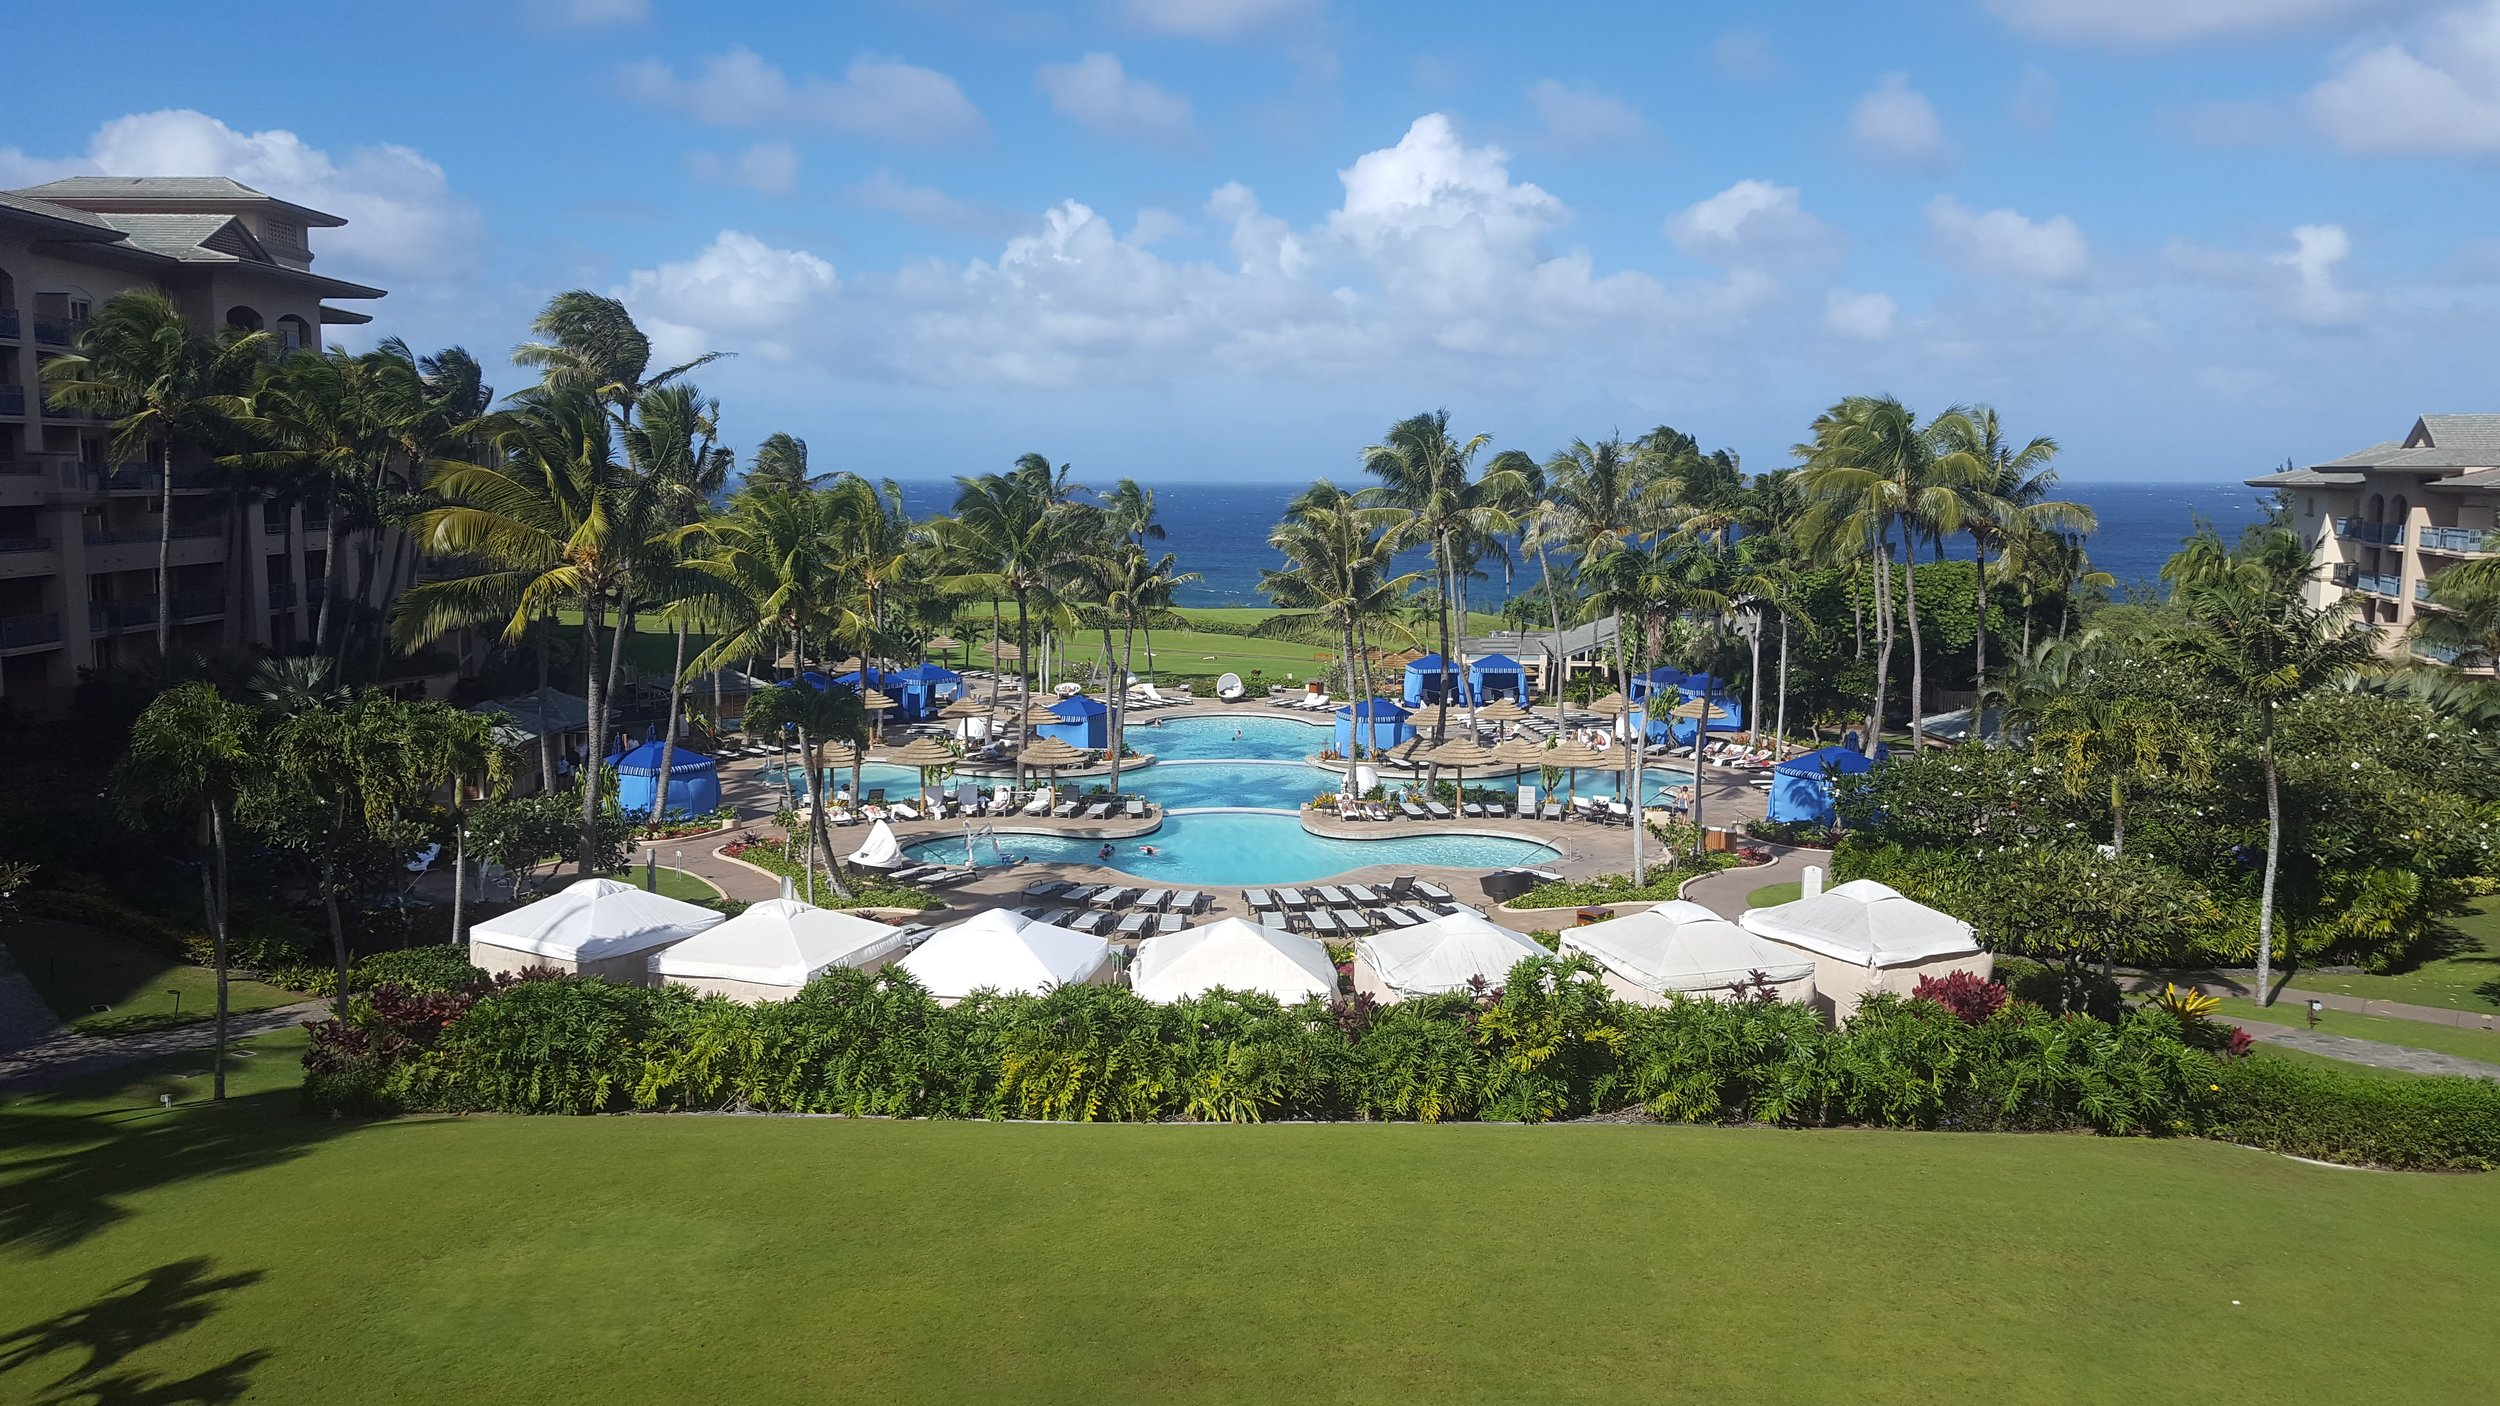 The pool at the RItz Carlton Kapalua